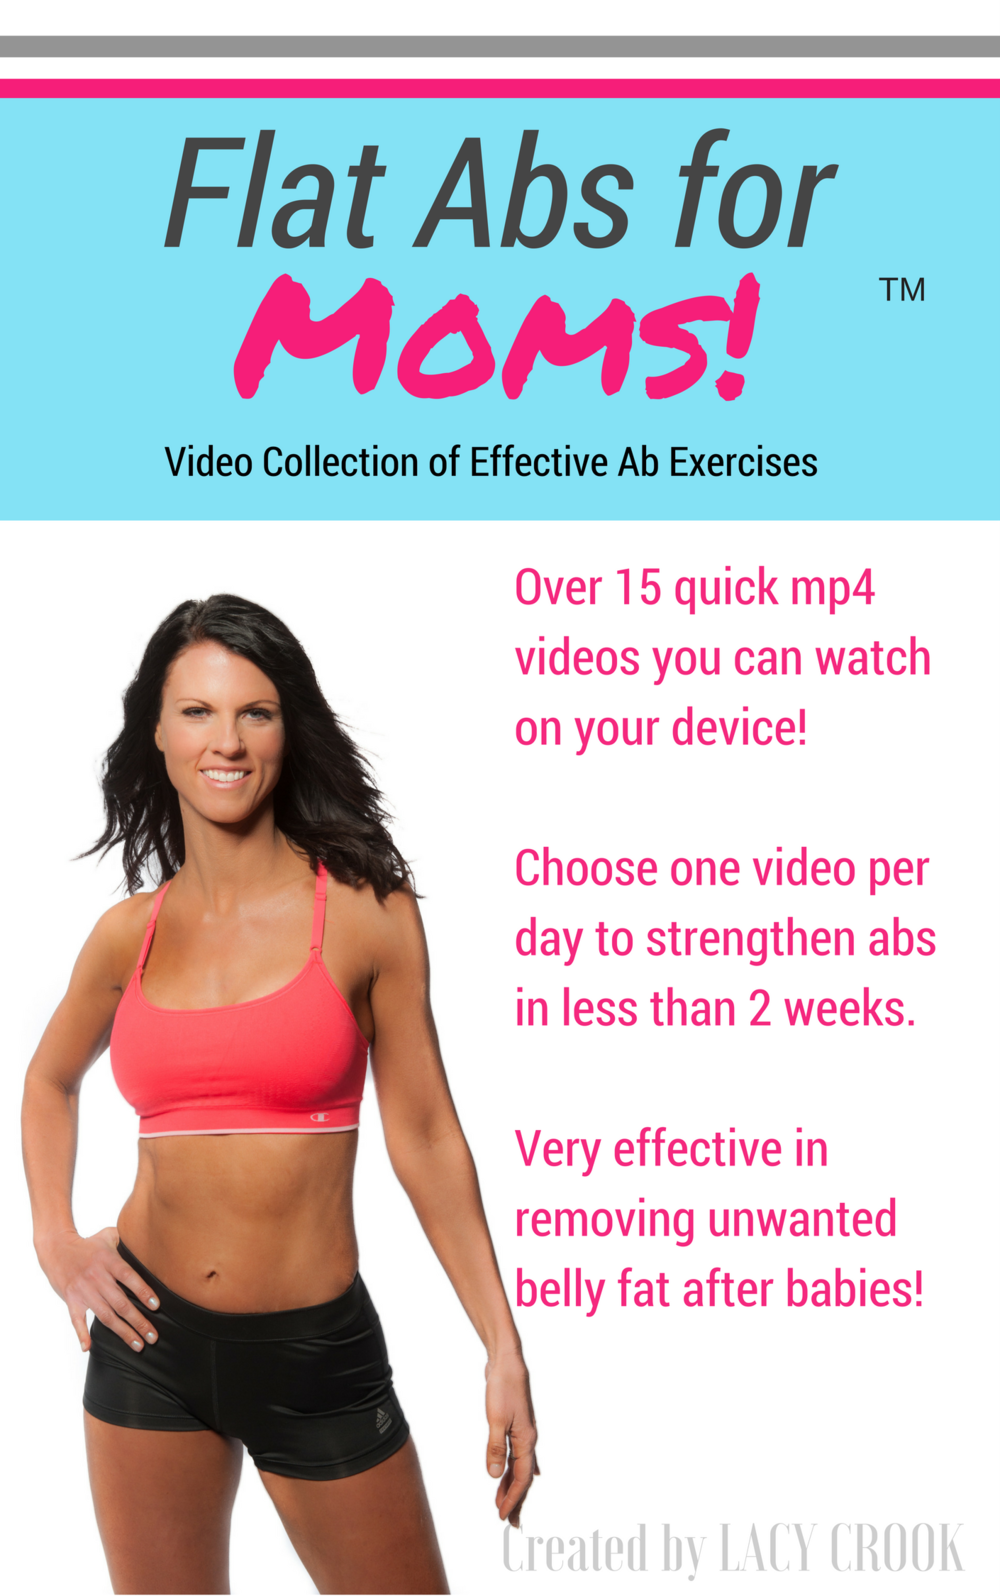 Flat Abs for Moms